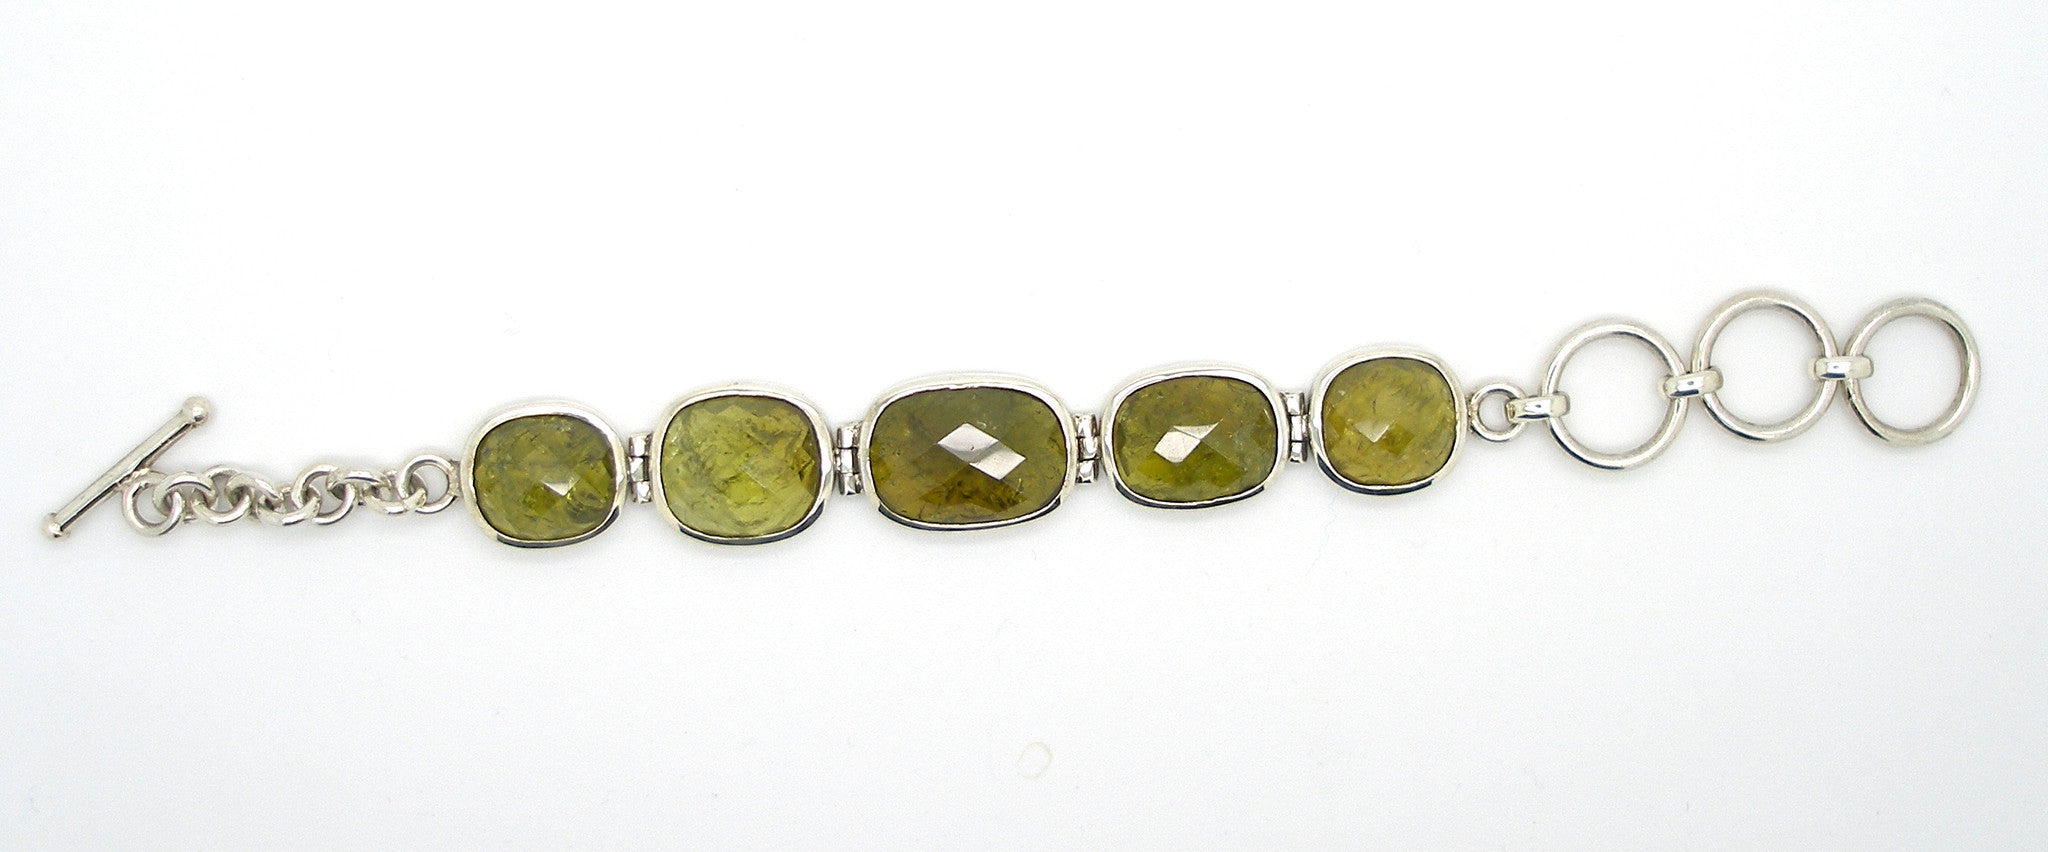 5 large faceted Grossular Garnets, Besel set, hinged together to make a very different Bracelet | These rare Garnets are Green, the name comes from the Latin for Gooseberry | Adjustable length up to 180 mm | Crystal Heart Melbourne since 1986